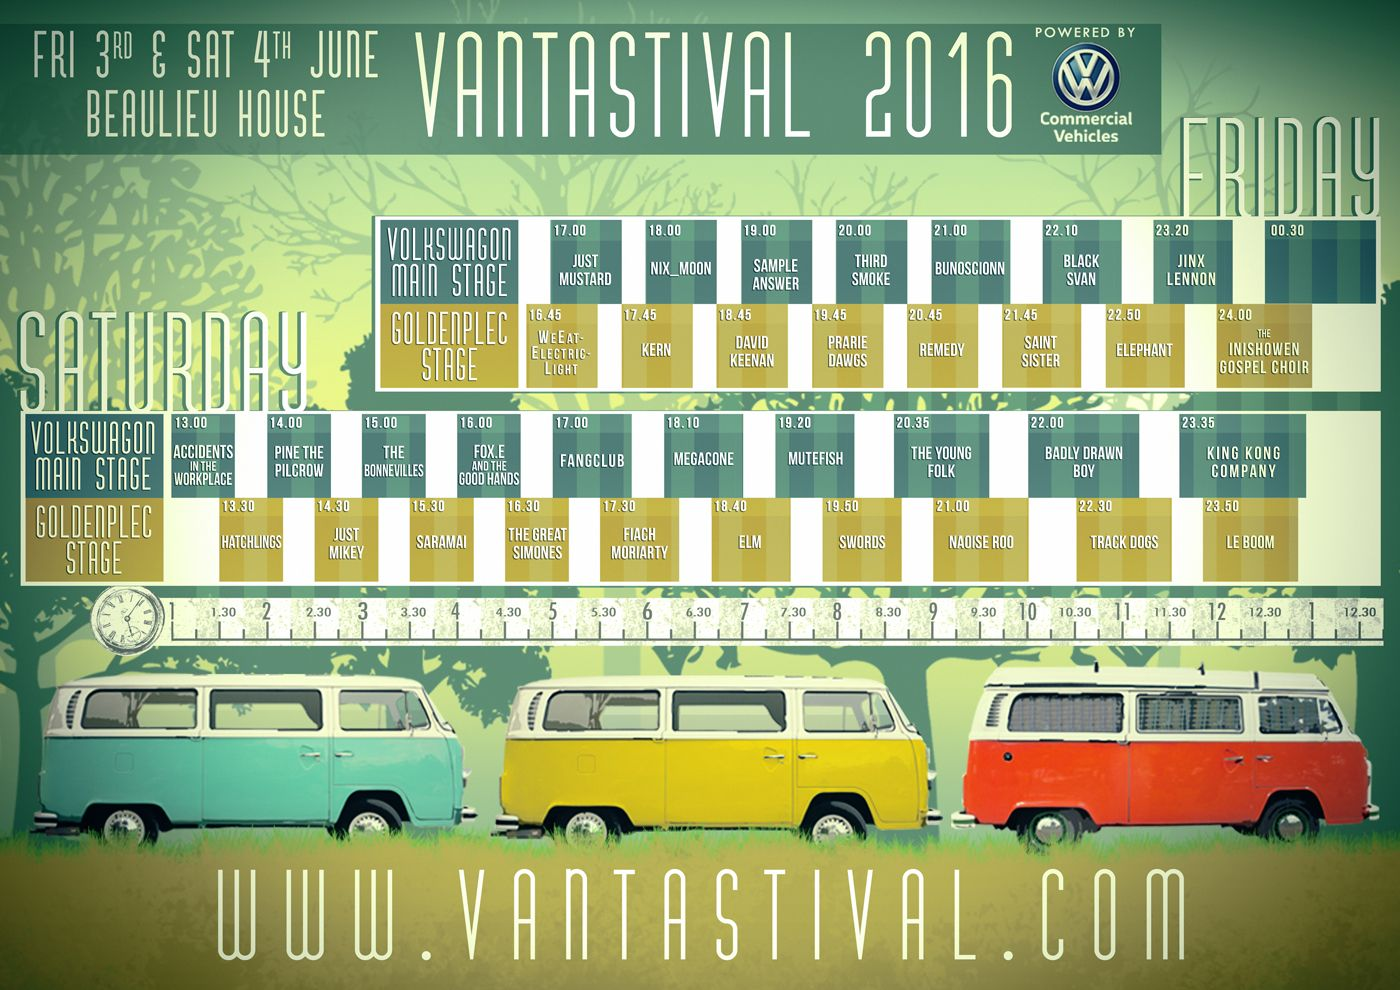 Vantastival 2016 Full Schedule